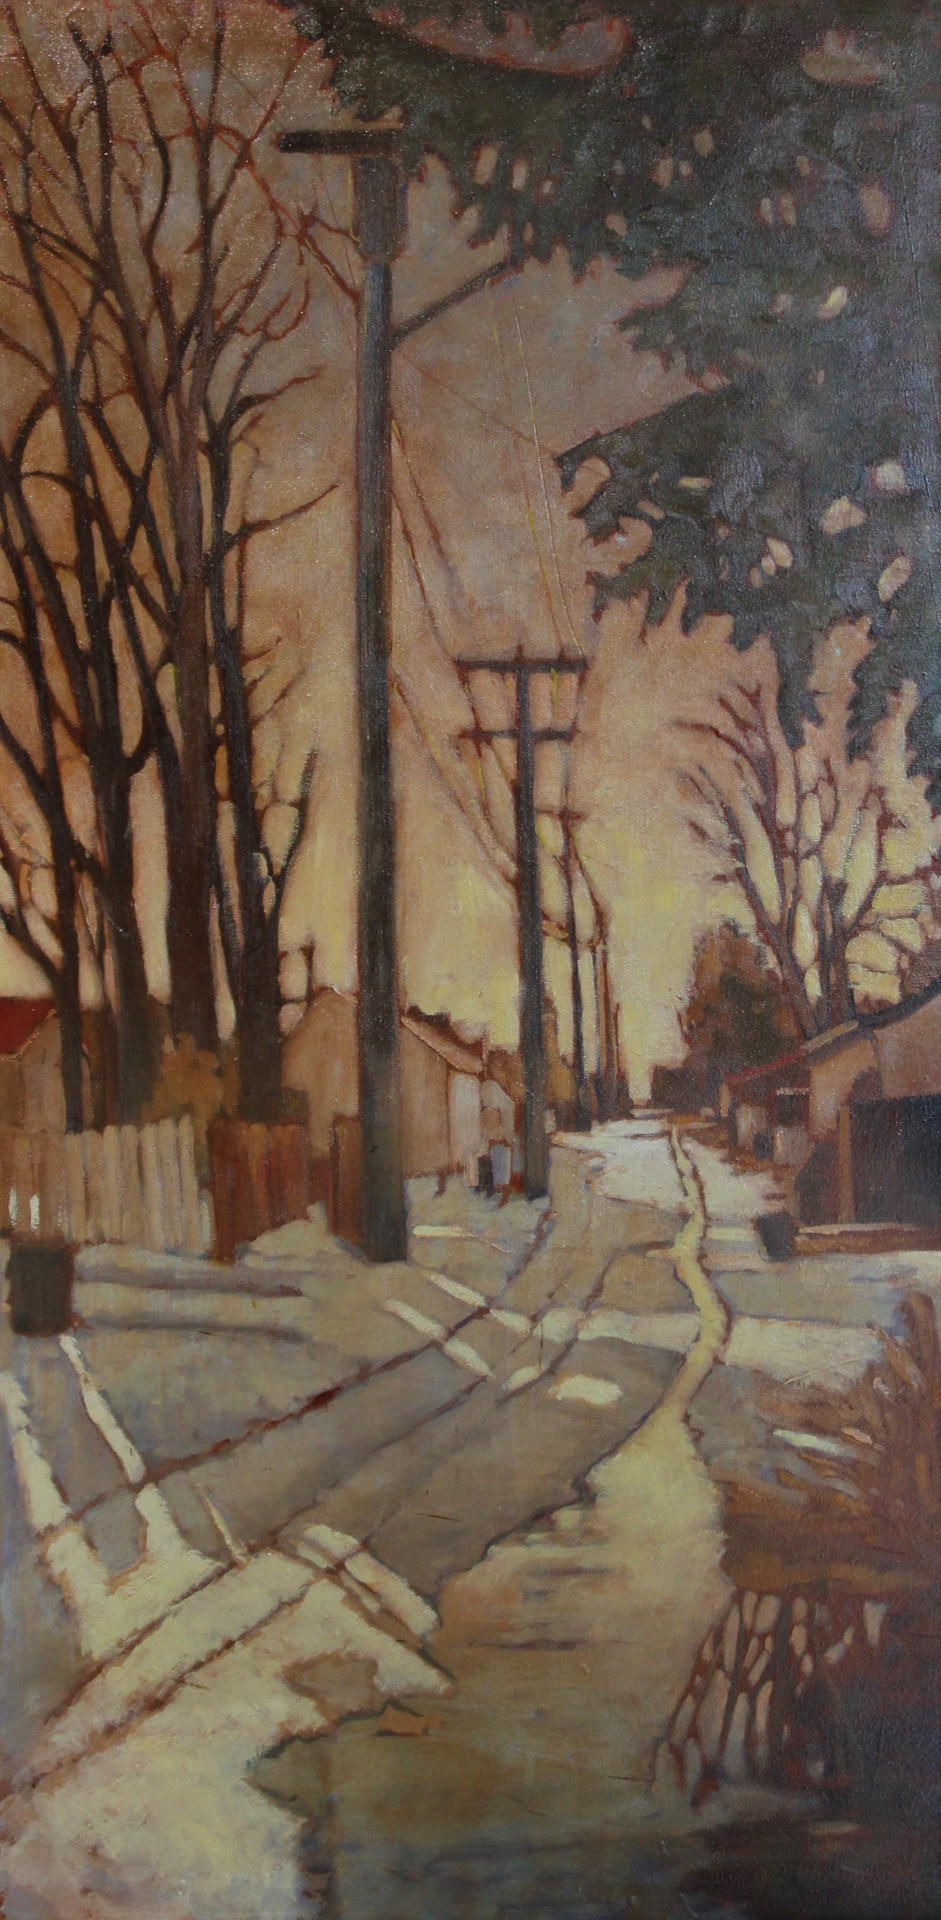 WINTER ALLEY - 40 x 20 - OIL ON CANVAS - 2004